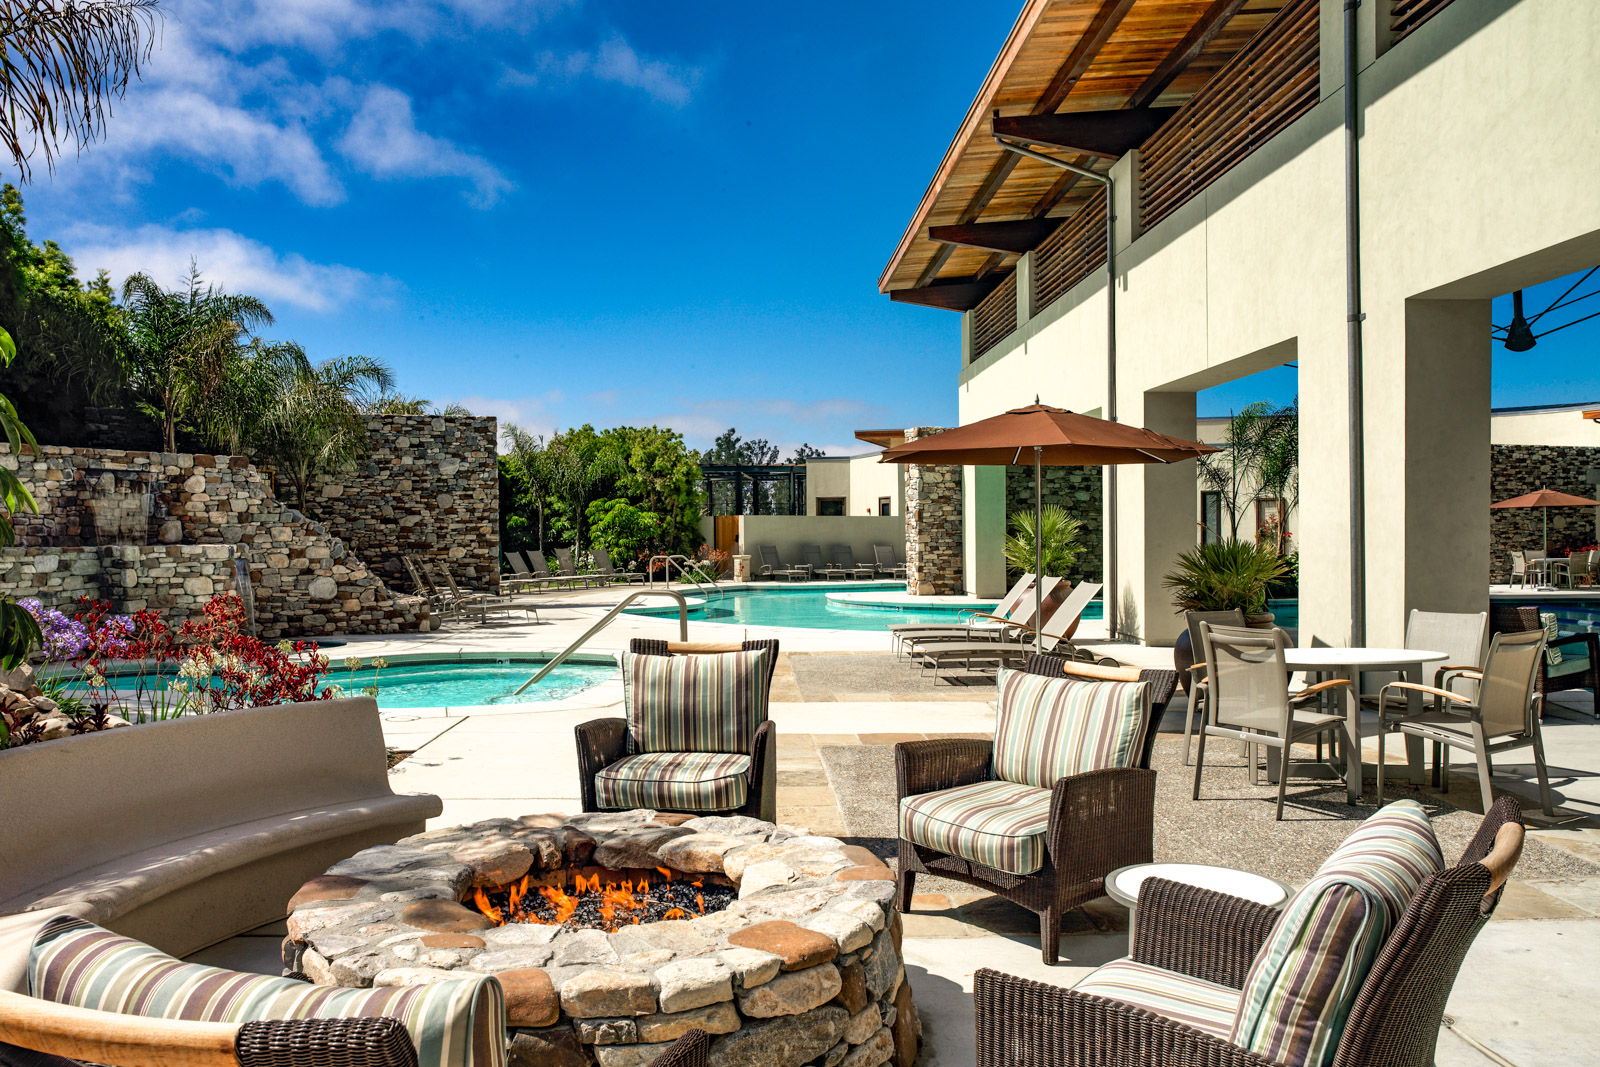 The outdoor pool, spa, patio, and fire pit at Trilogy at Monarch Dunes in Nipomo, California